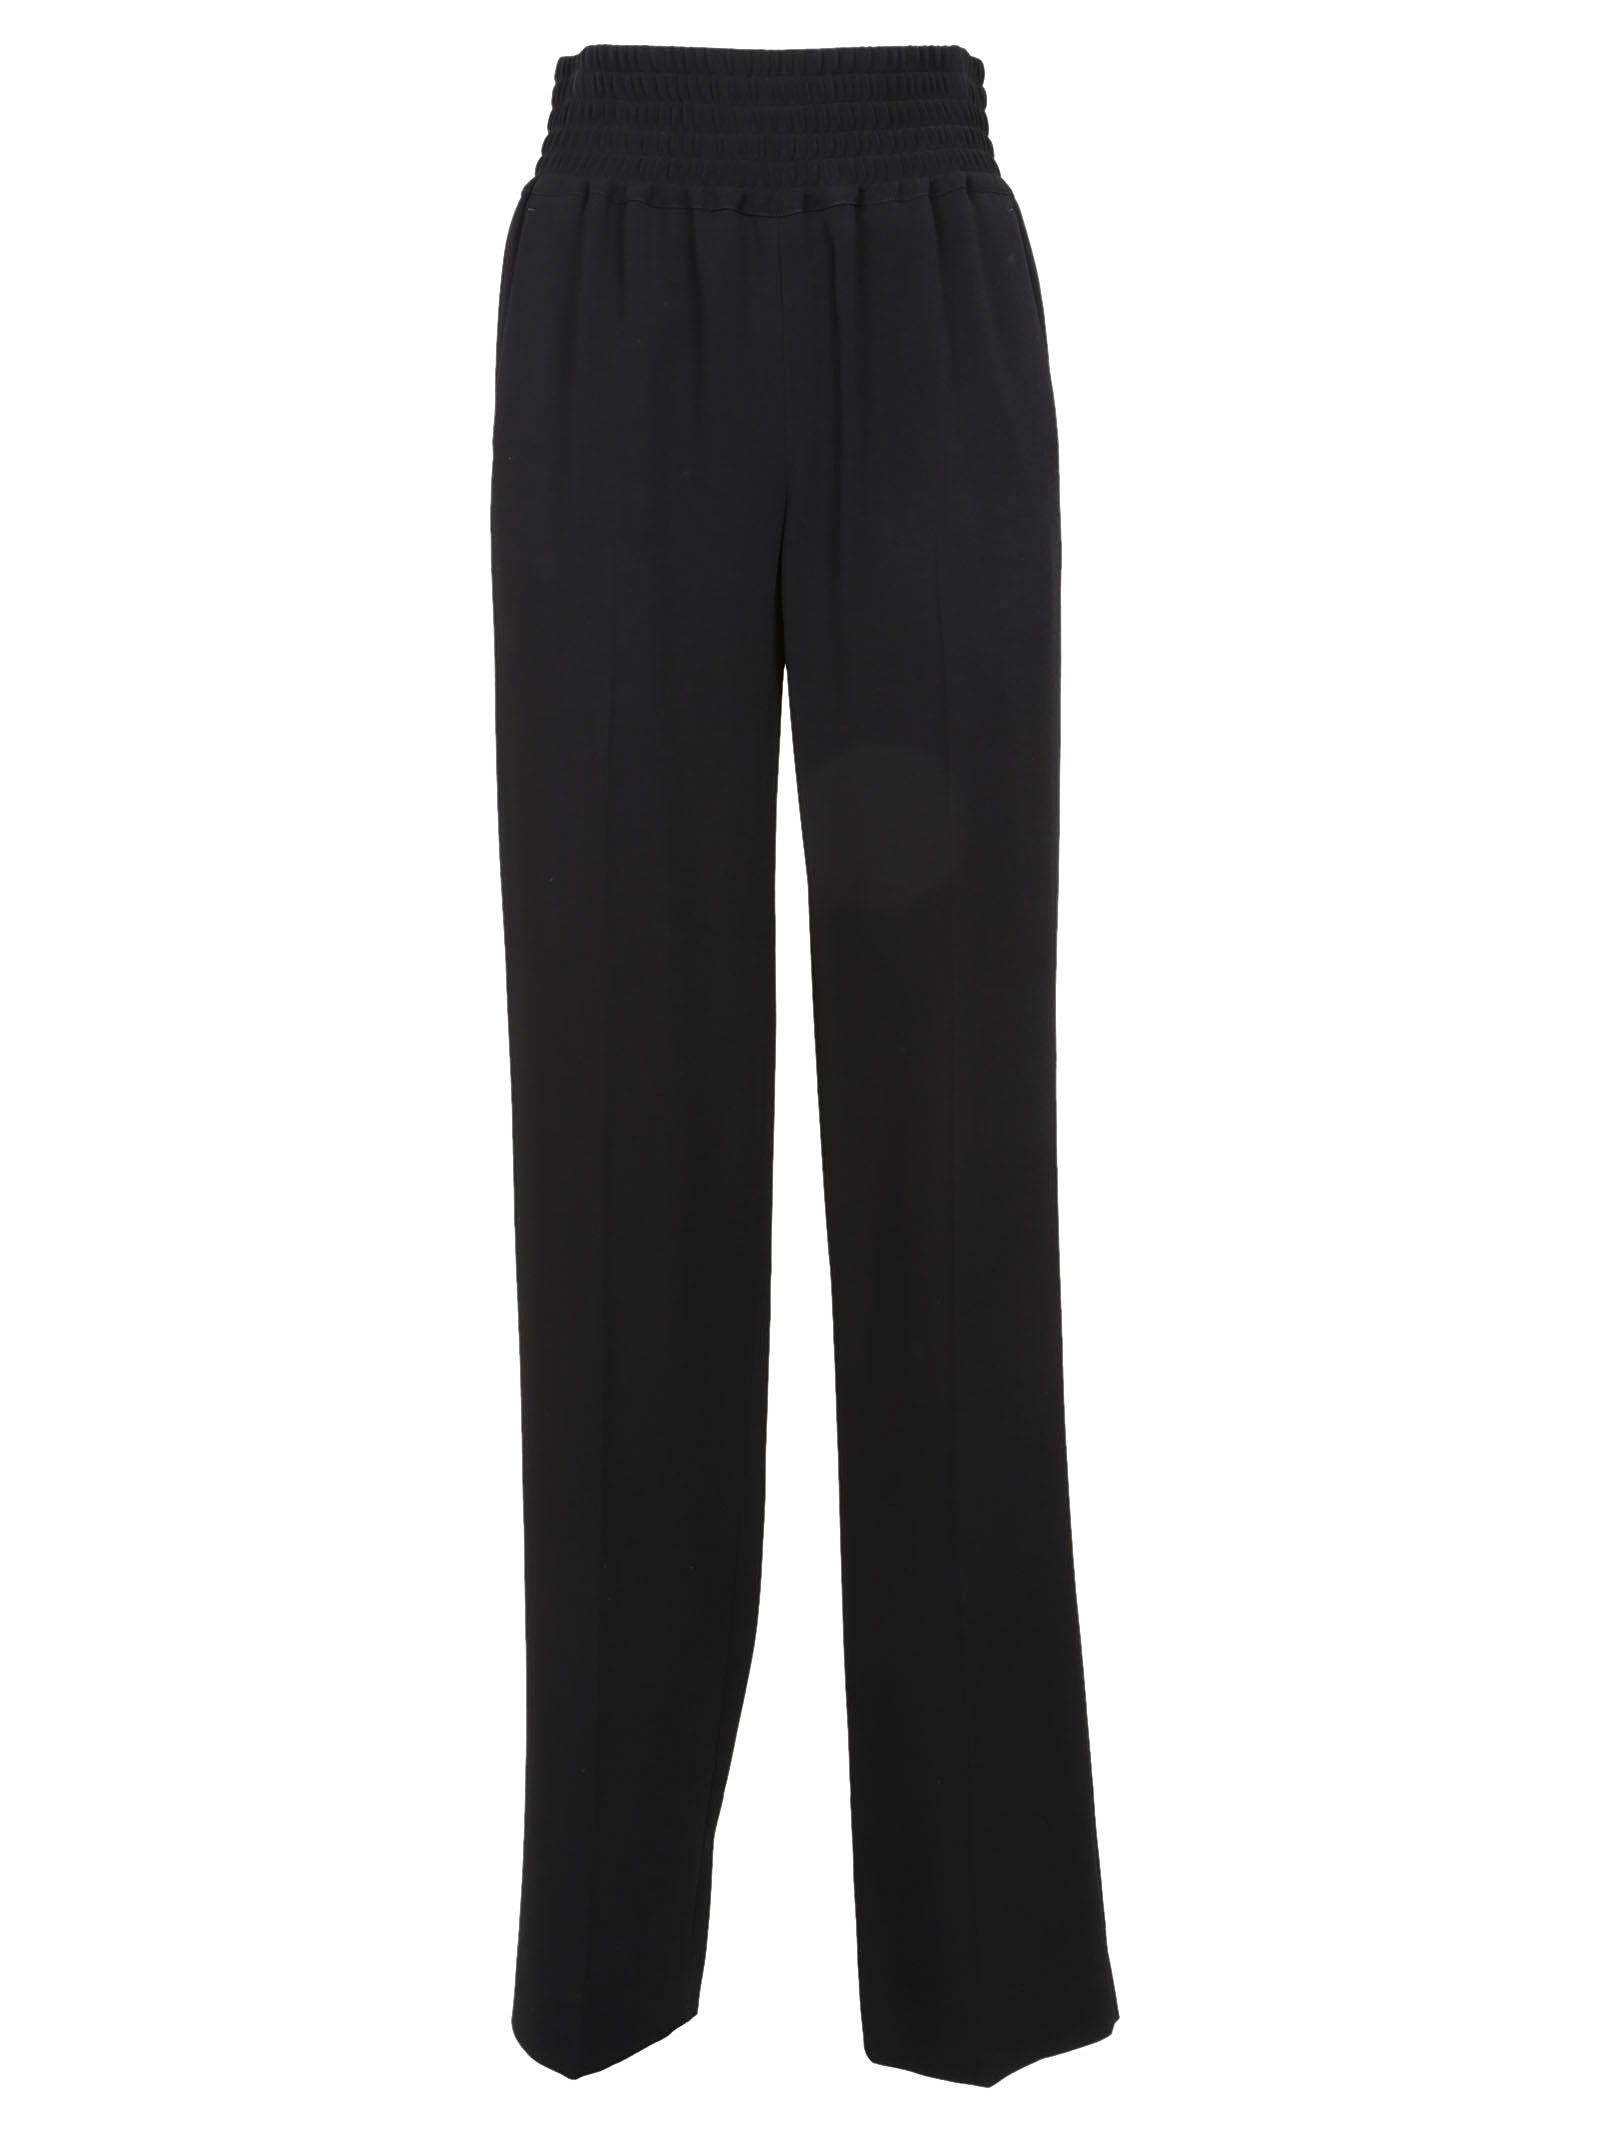 Givenchy Elasticated Trousers